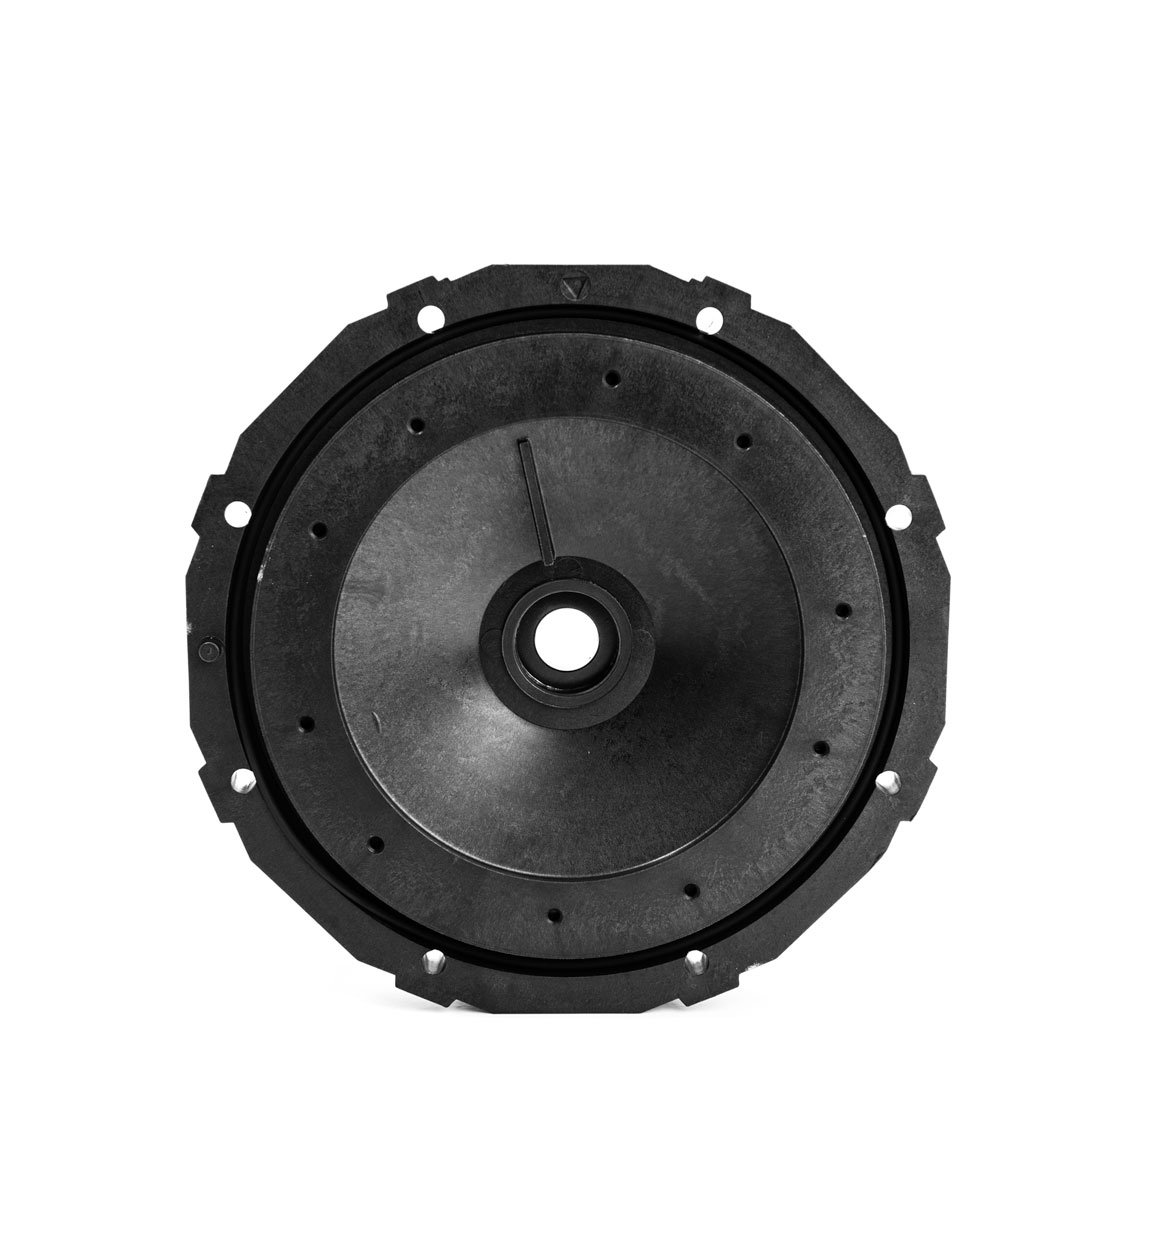 ASTRAL VICTORIA PLUS PUMP MECHANICAL SEAL PLATE